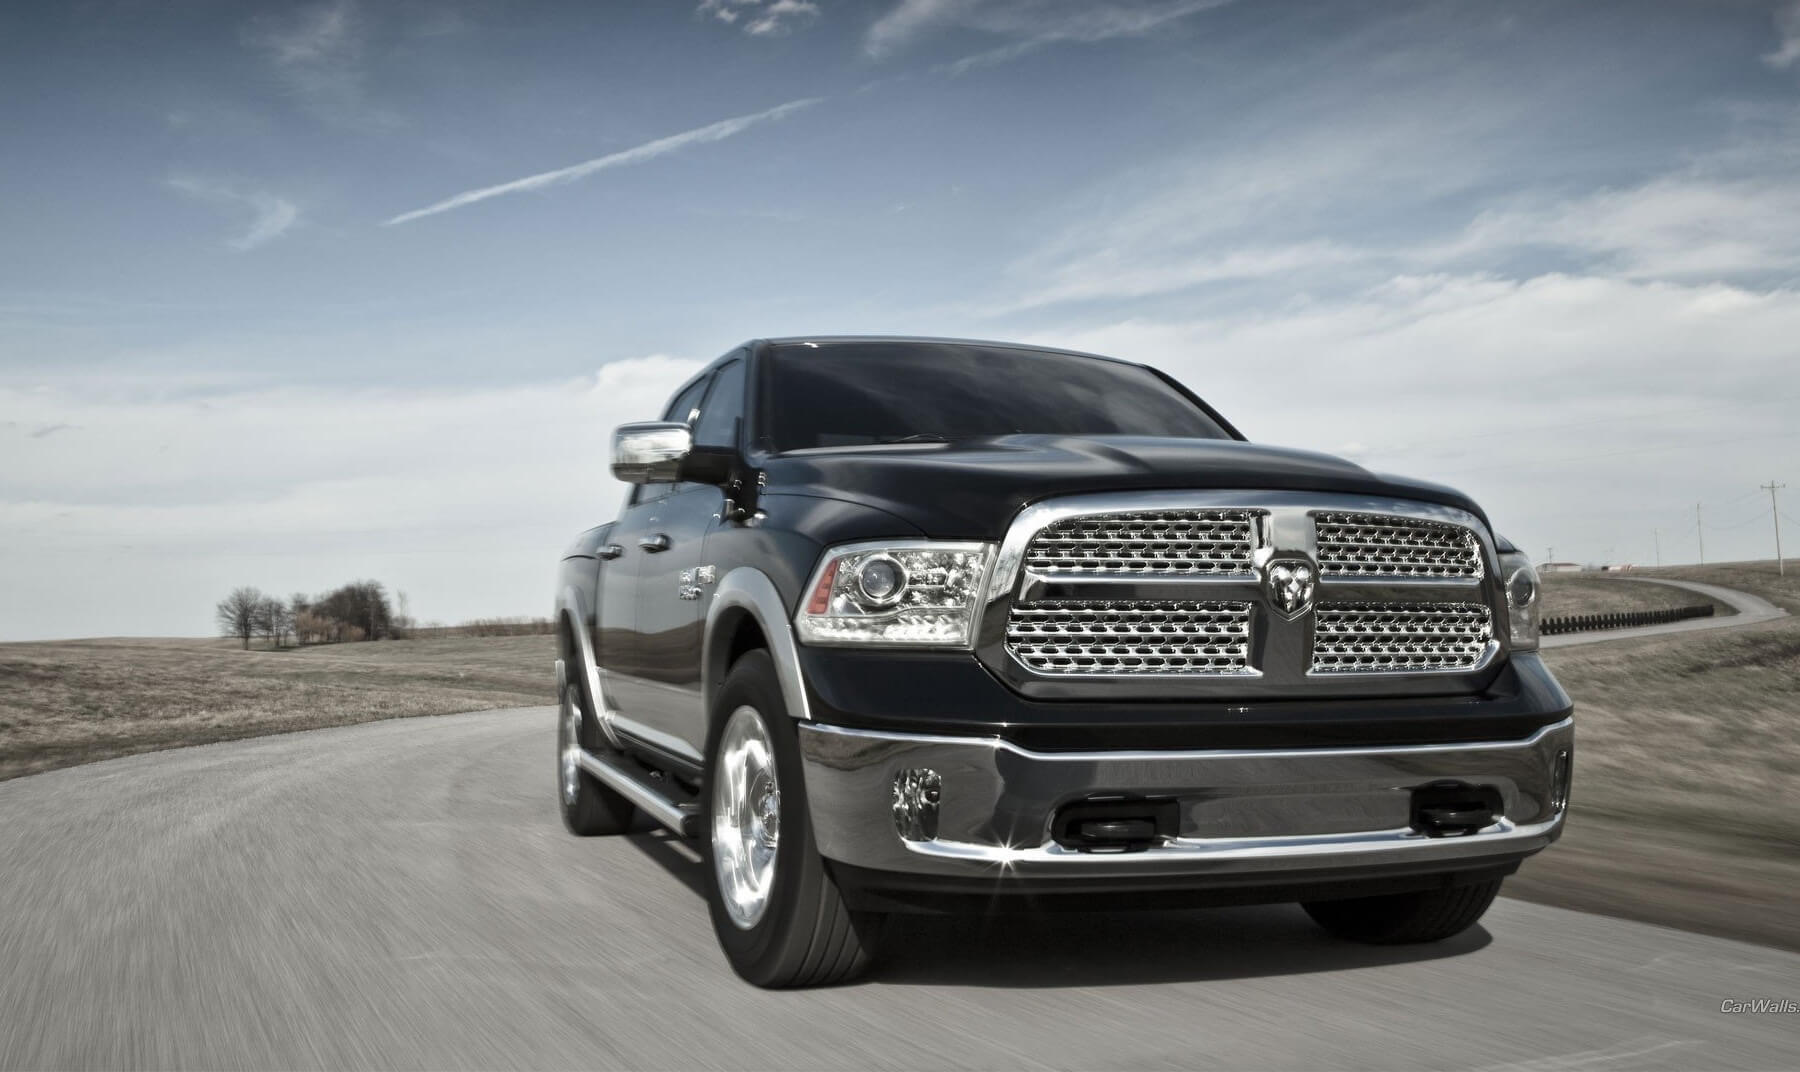 2016 Ram 1500 on the road